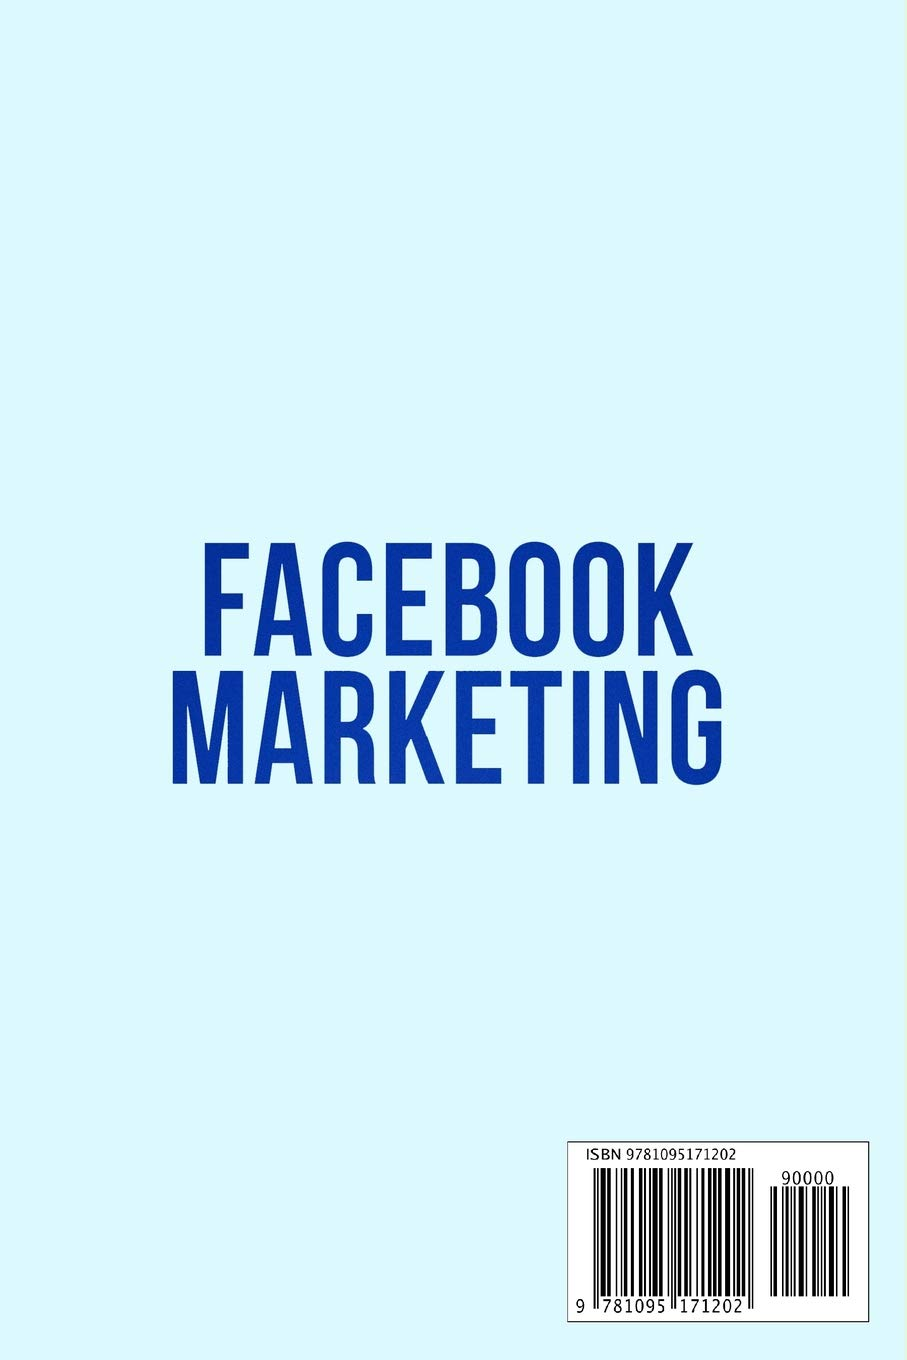 Facebook Marketing Advertising 2019: 10,000/month ultimate